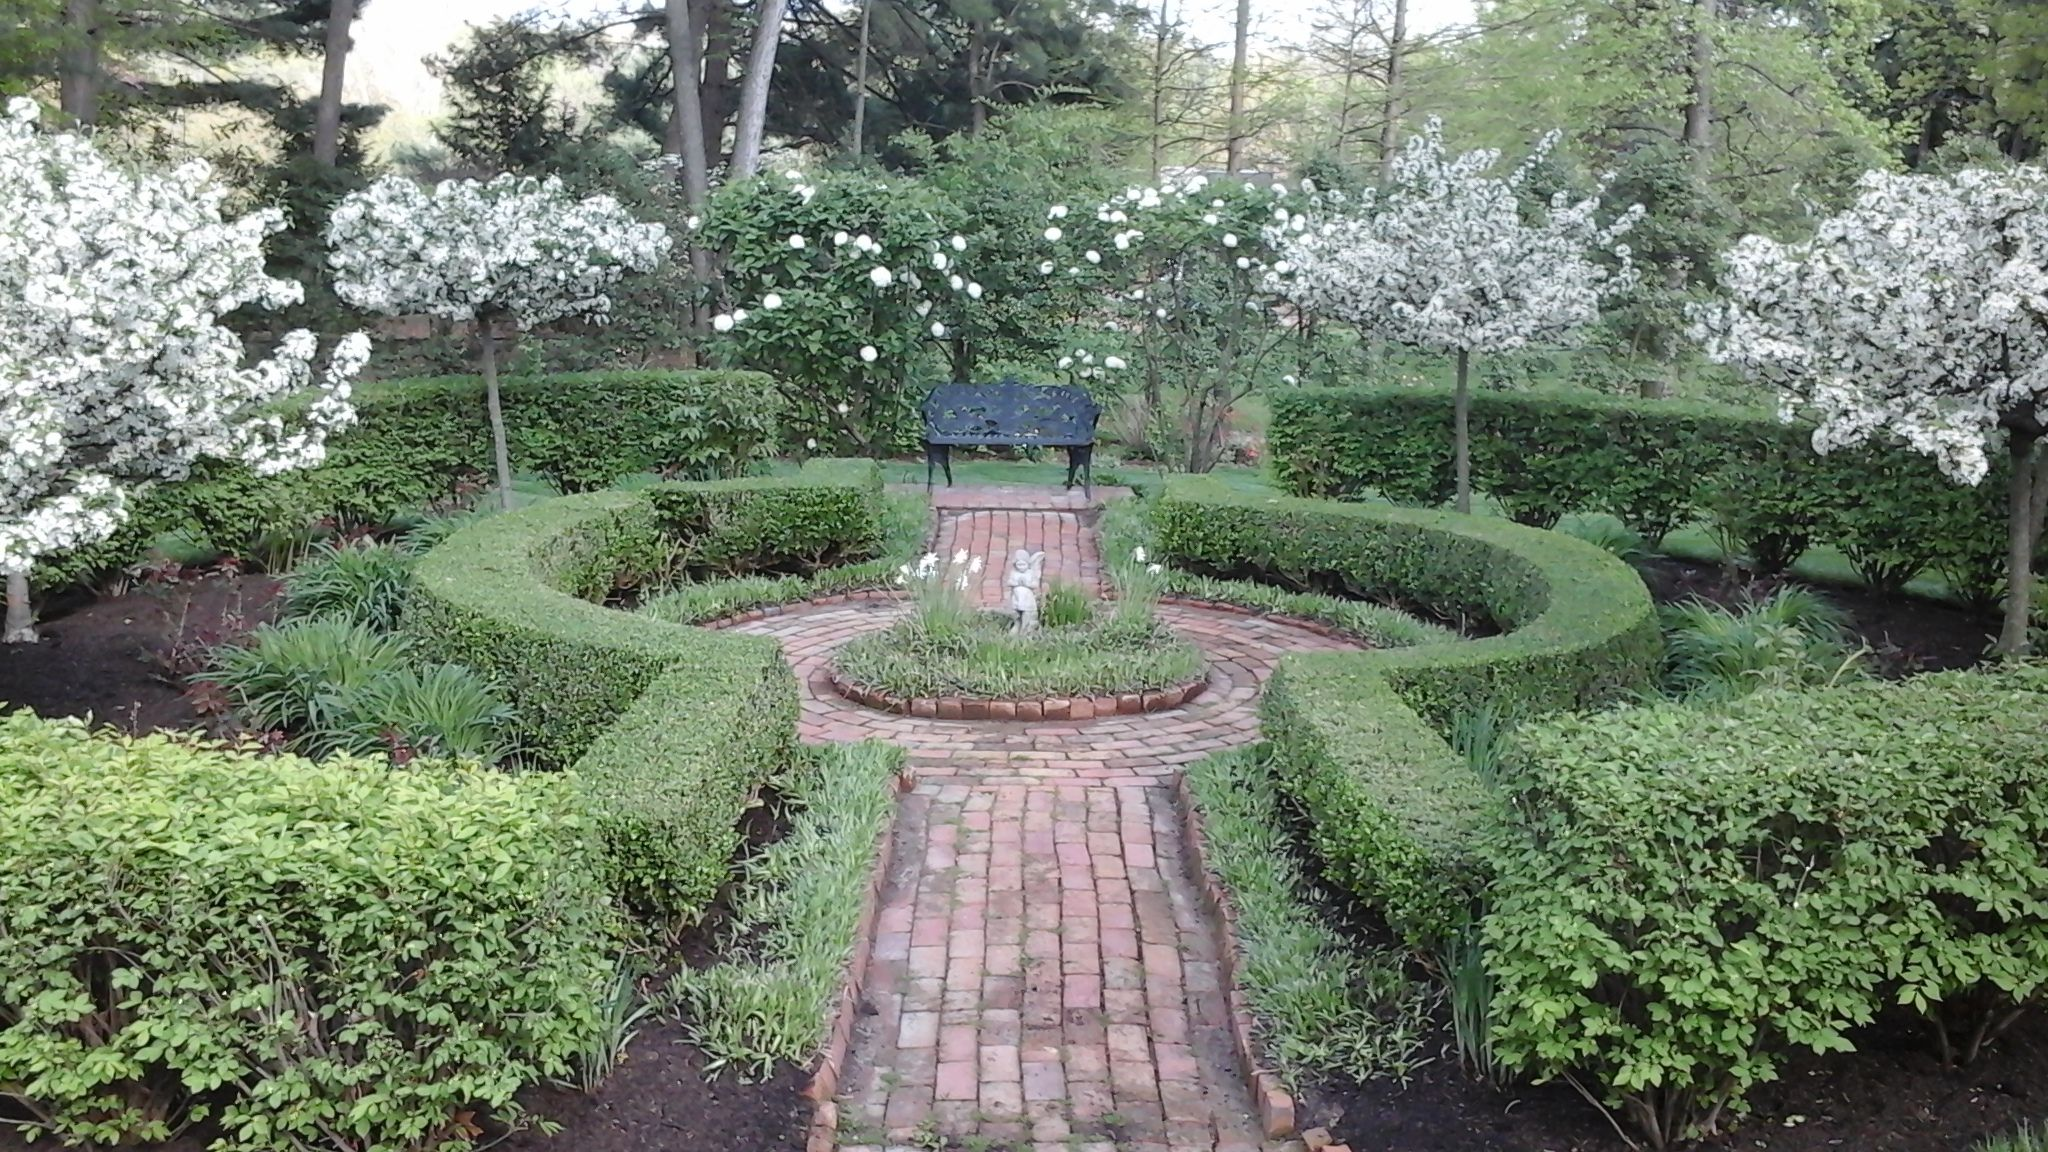 Formal English Garden Hedges Of Boxwoods And Burning Bushes Frame Beds Of Perennials Roses And Other Flowe French Garden Design Garden Design Garden Hedges